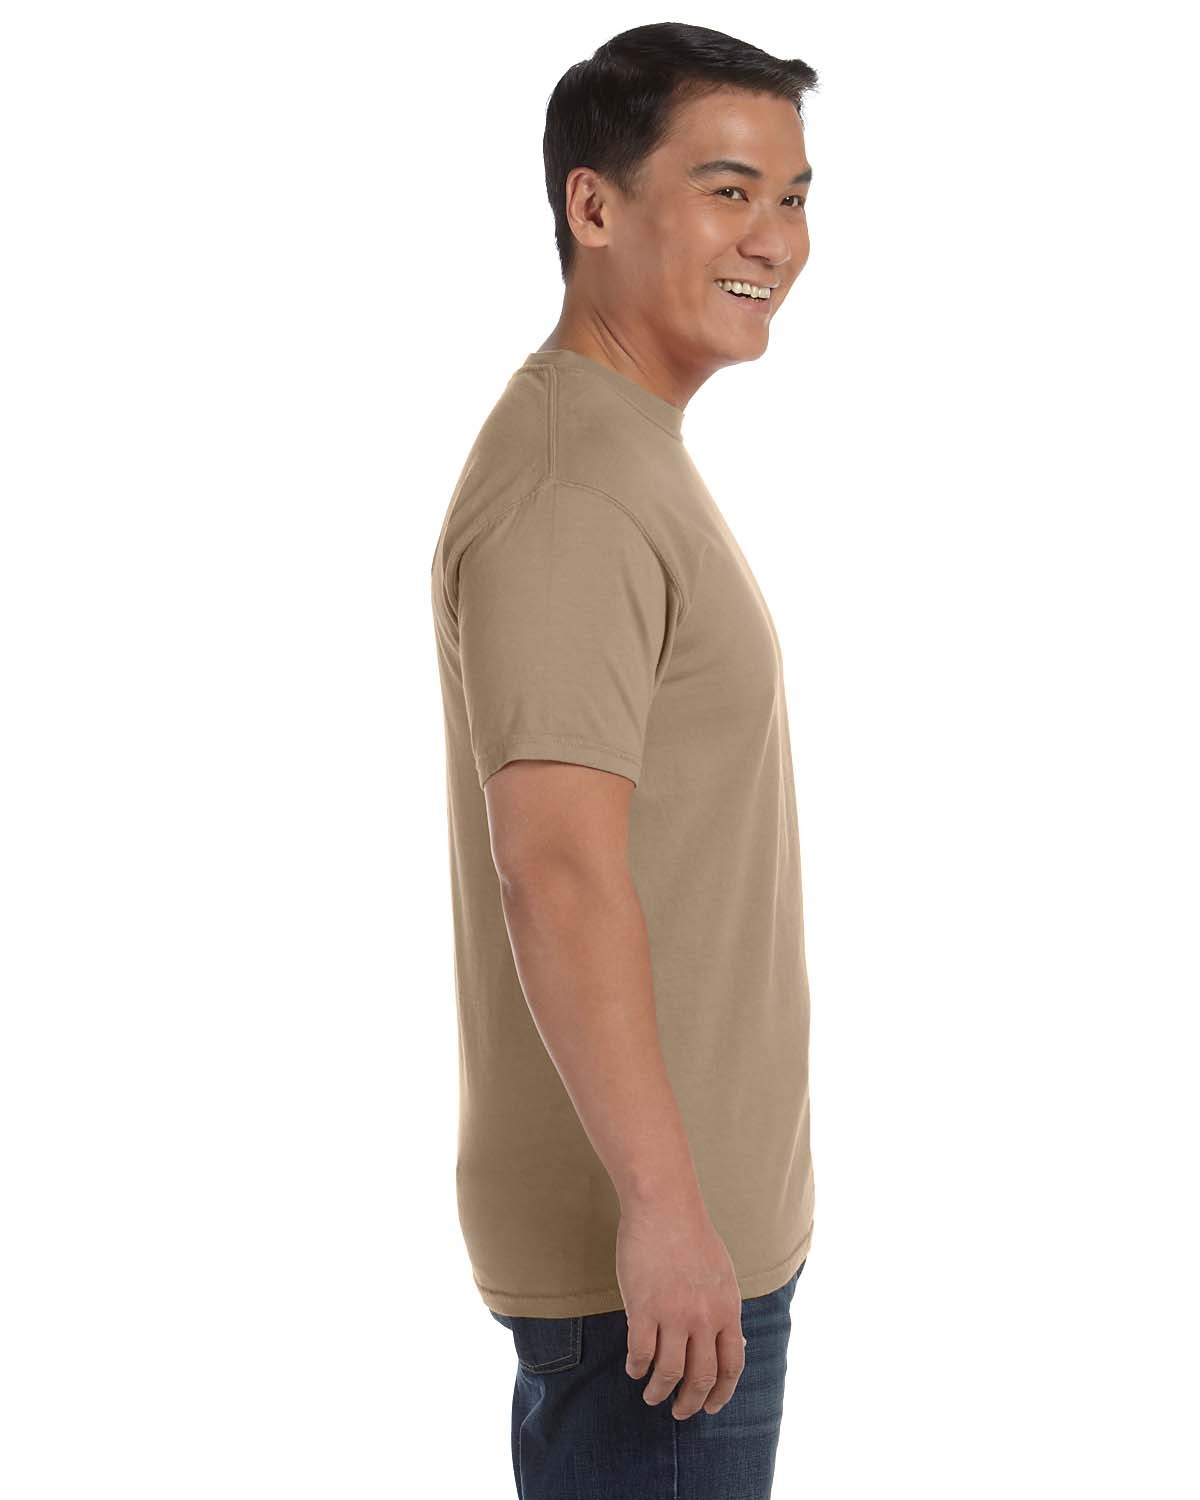 C1717 Comfort Colors KHAKI